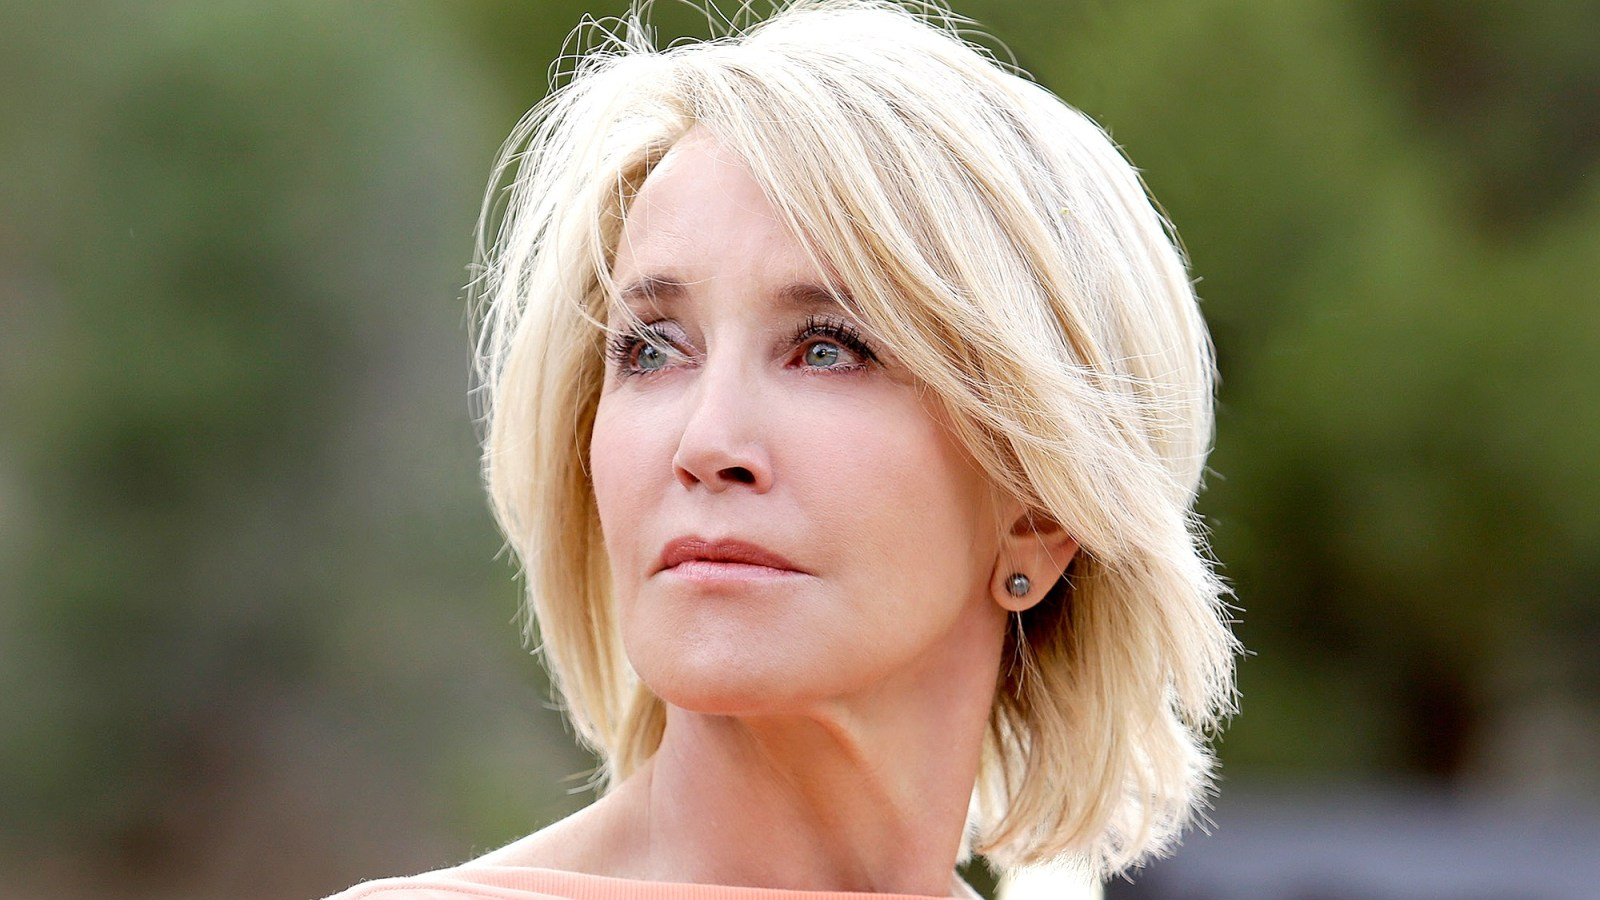 Felicity-Huffman-Is-Facing-4-10-Months-in-Prison-After-Guilty-Plea.jpg